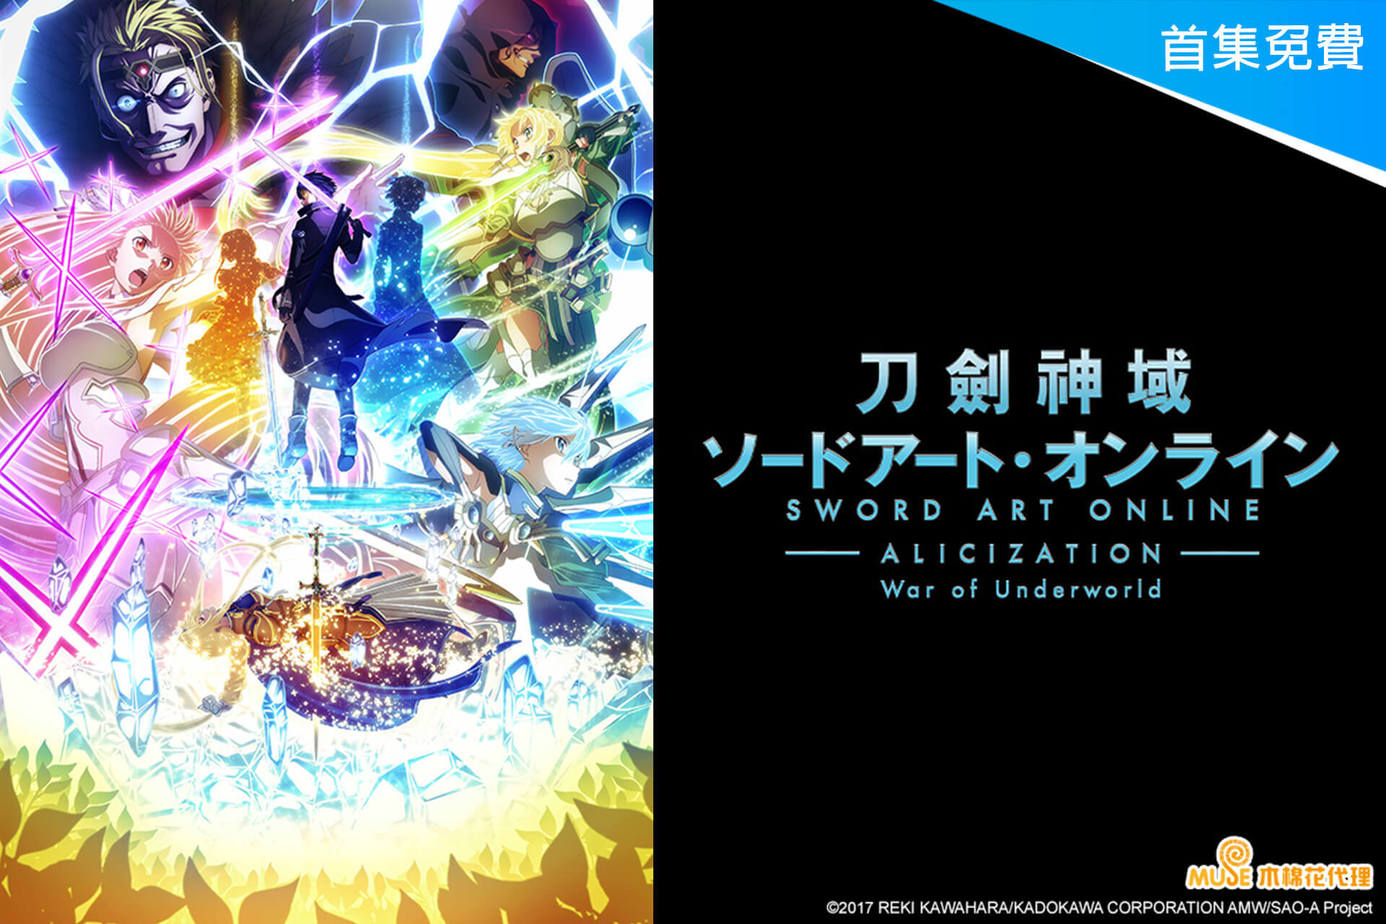 刀劍神域Alicization War of Underworld